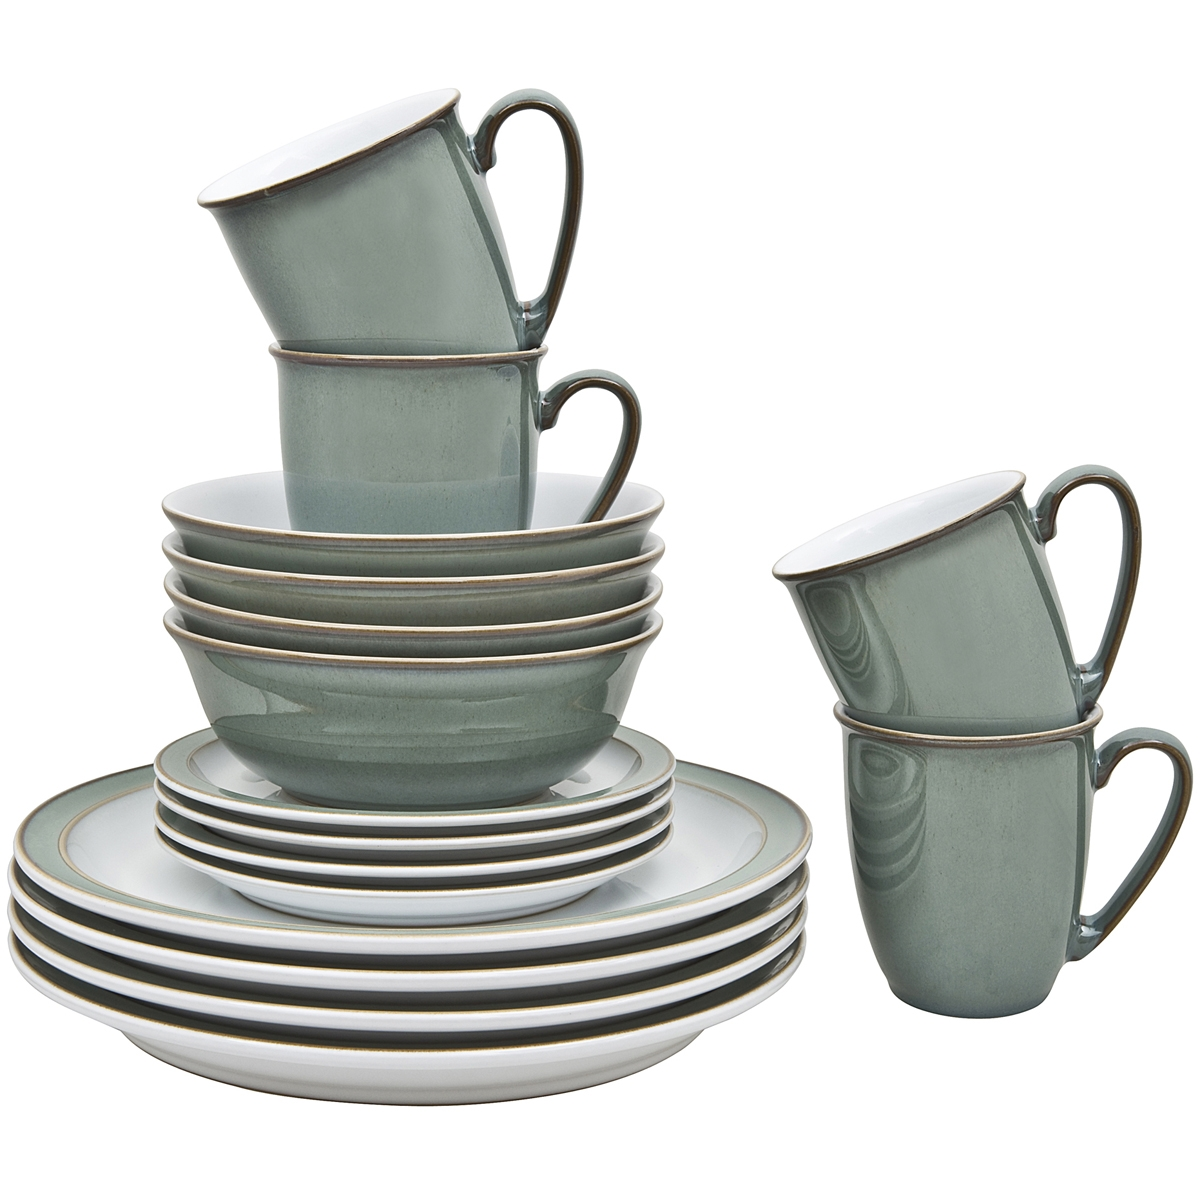 denby-regency-green-16-piece-tableware-set-i5a0424f3210c0.jpg